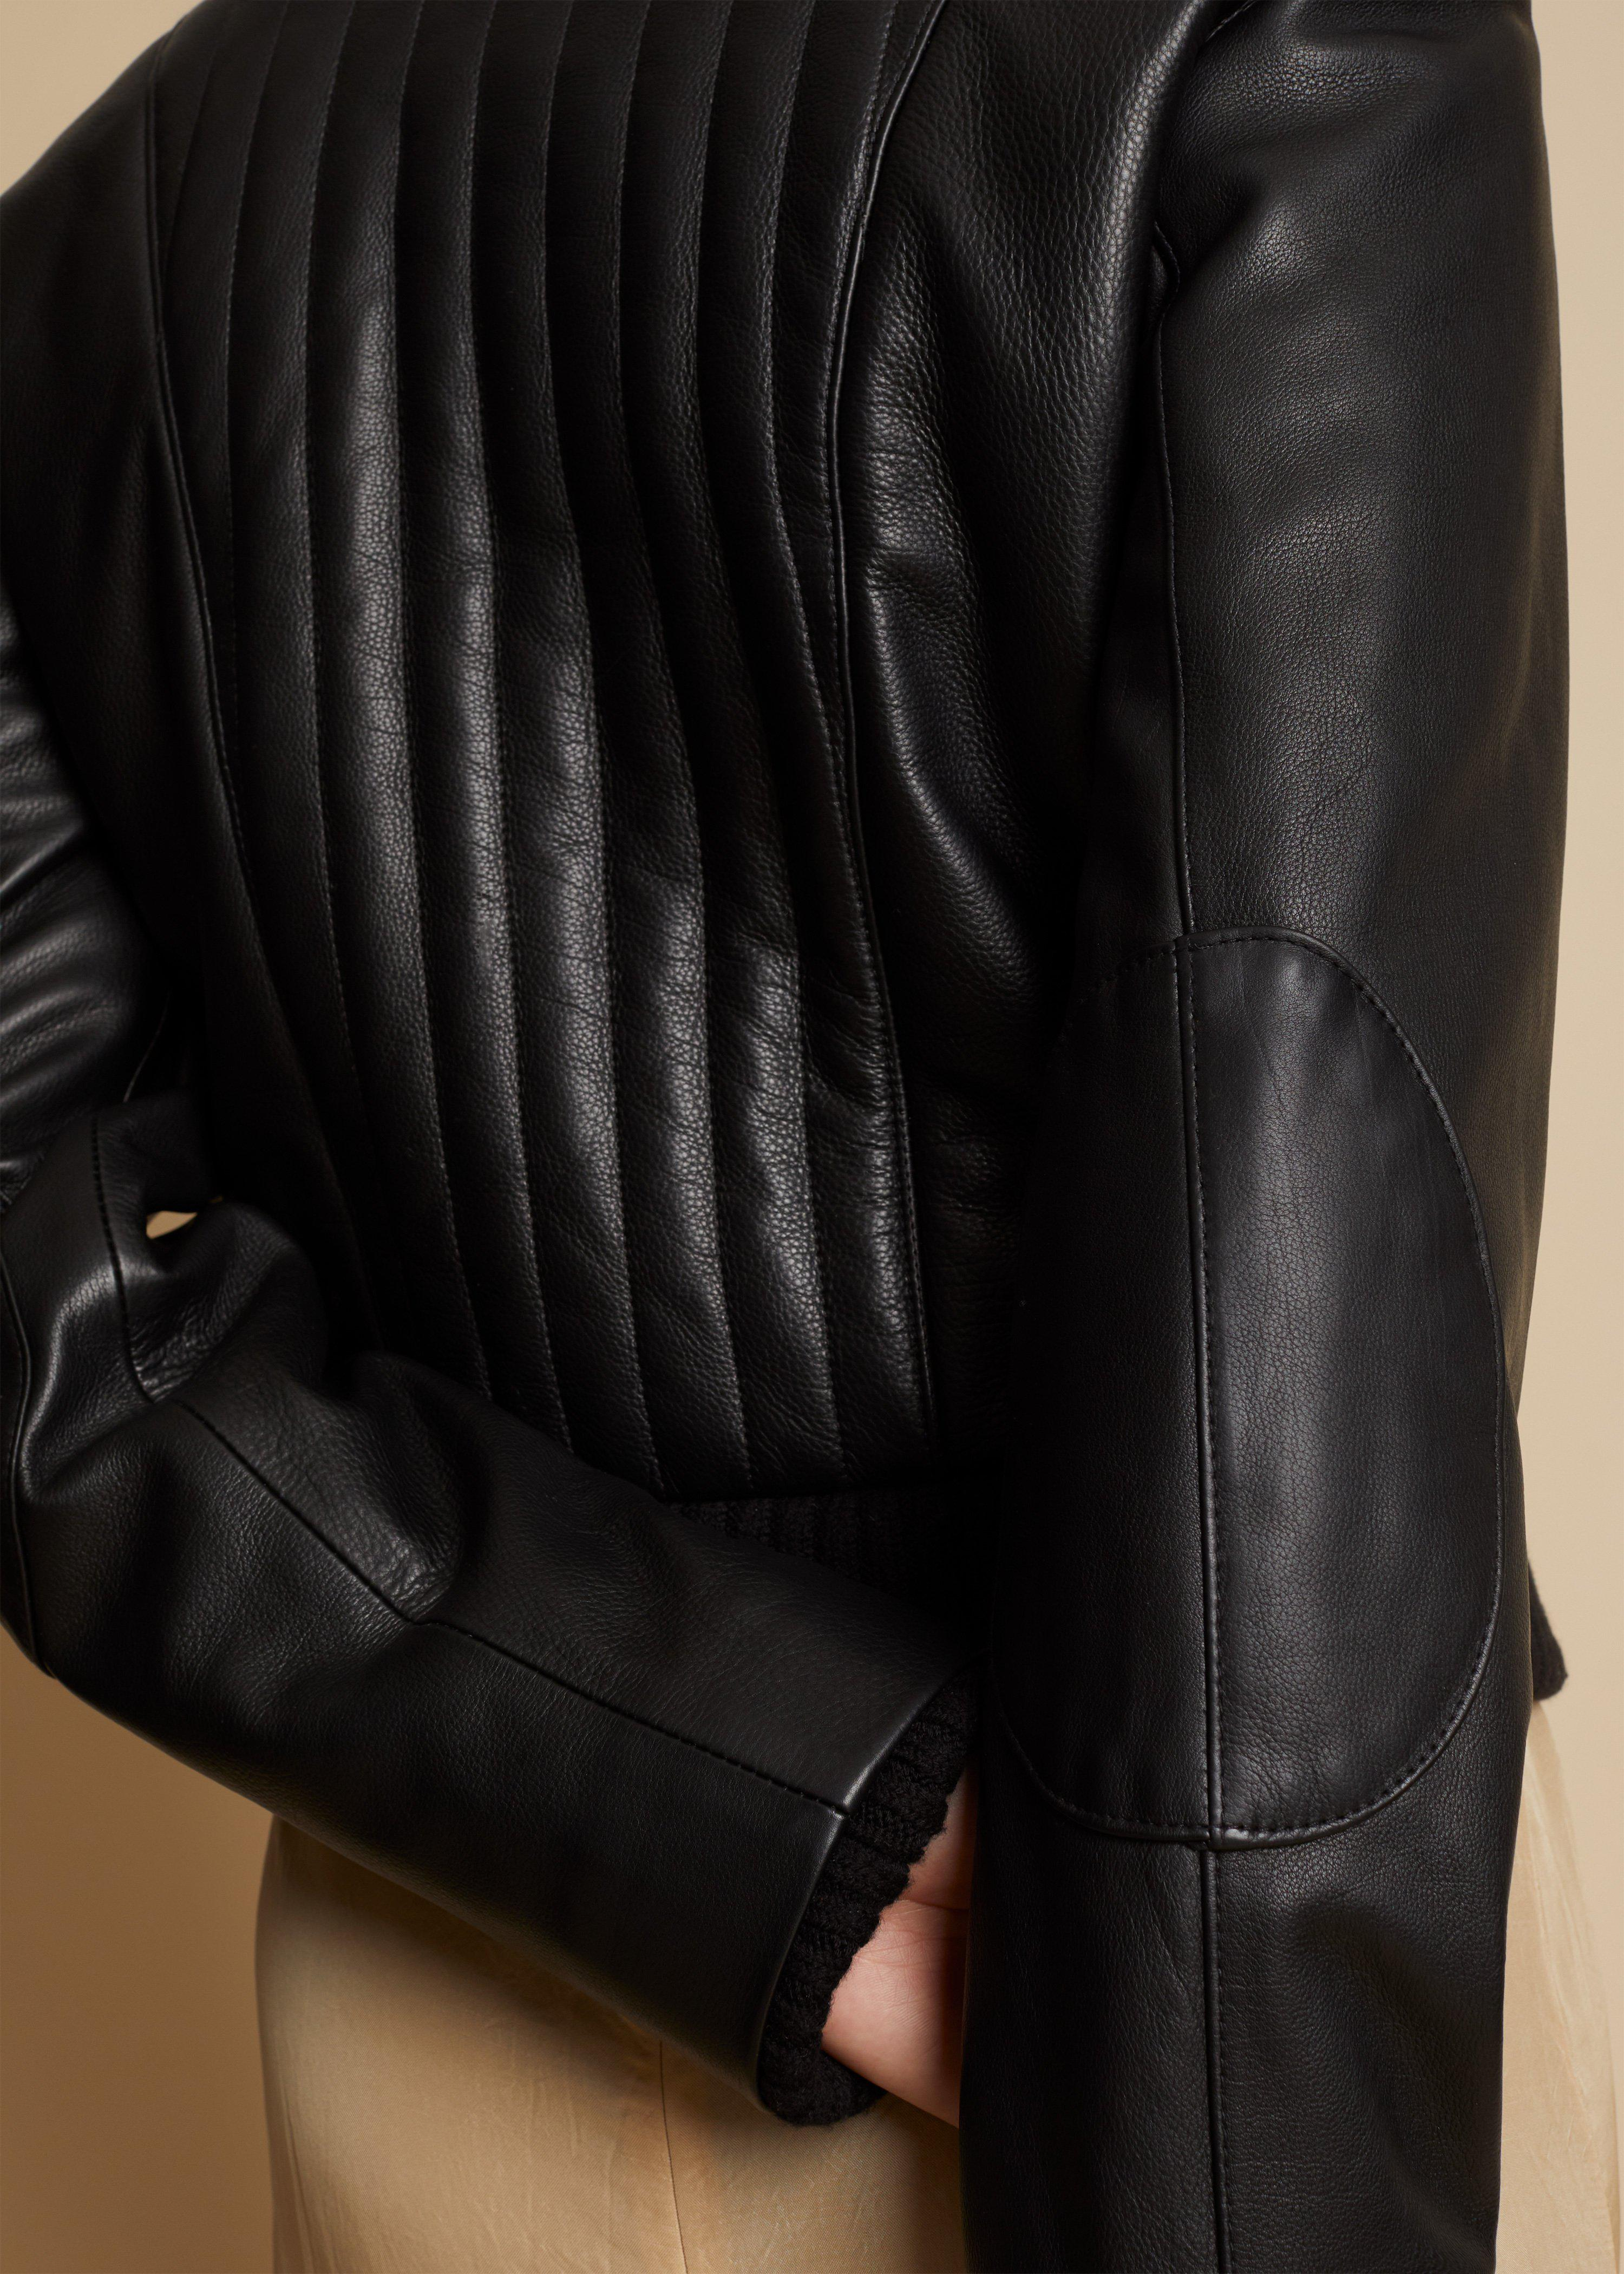 The Nicolette Jacket in Black Leather 6